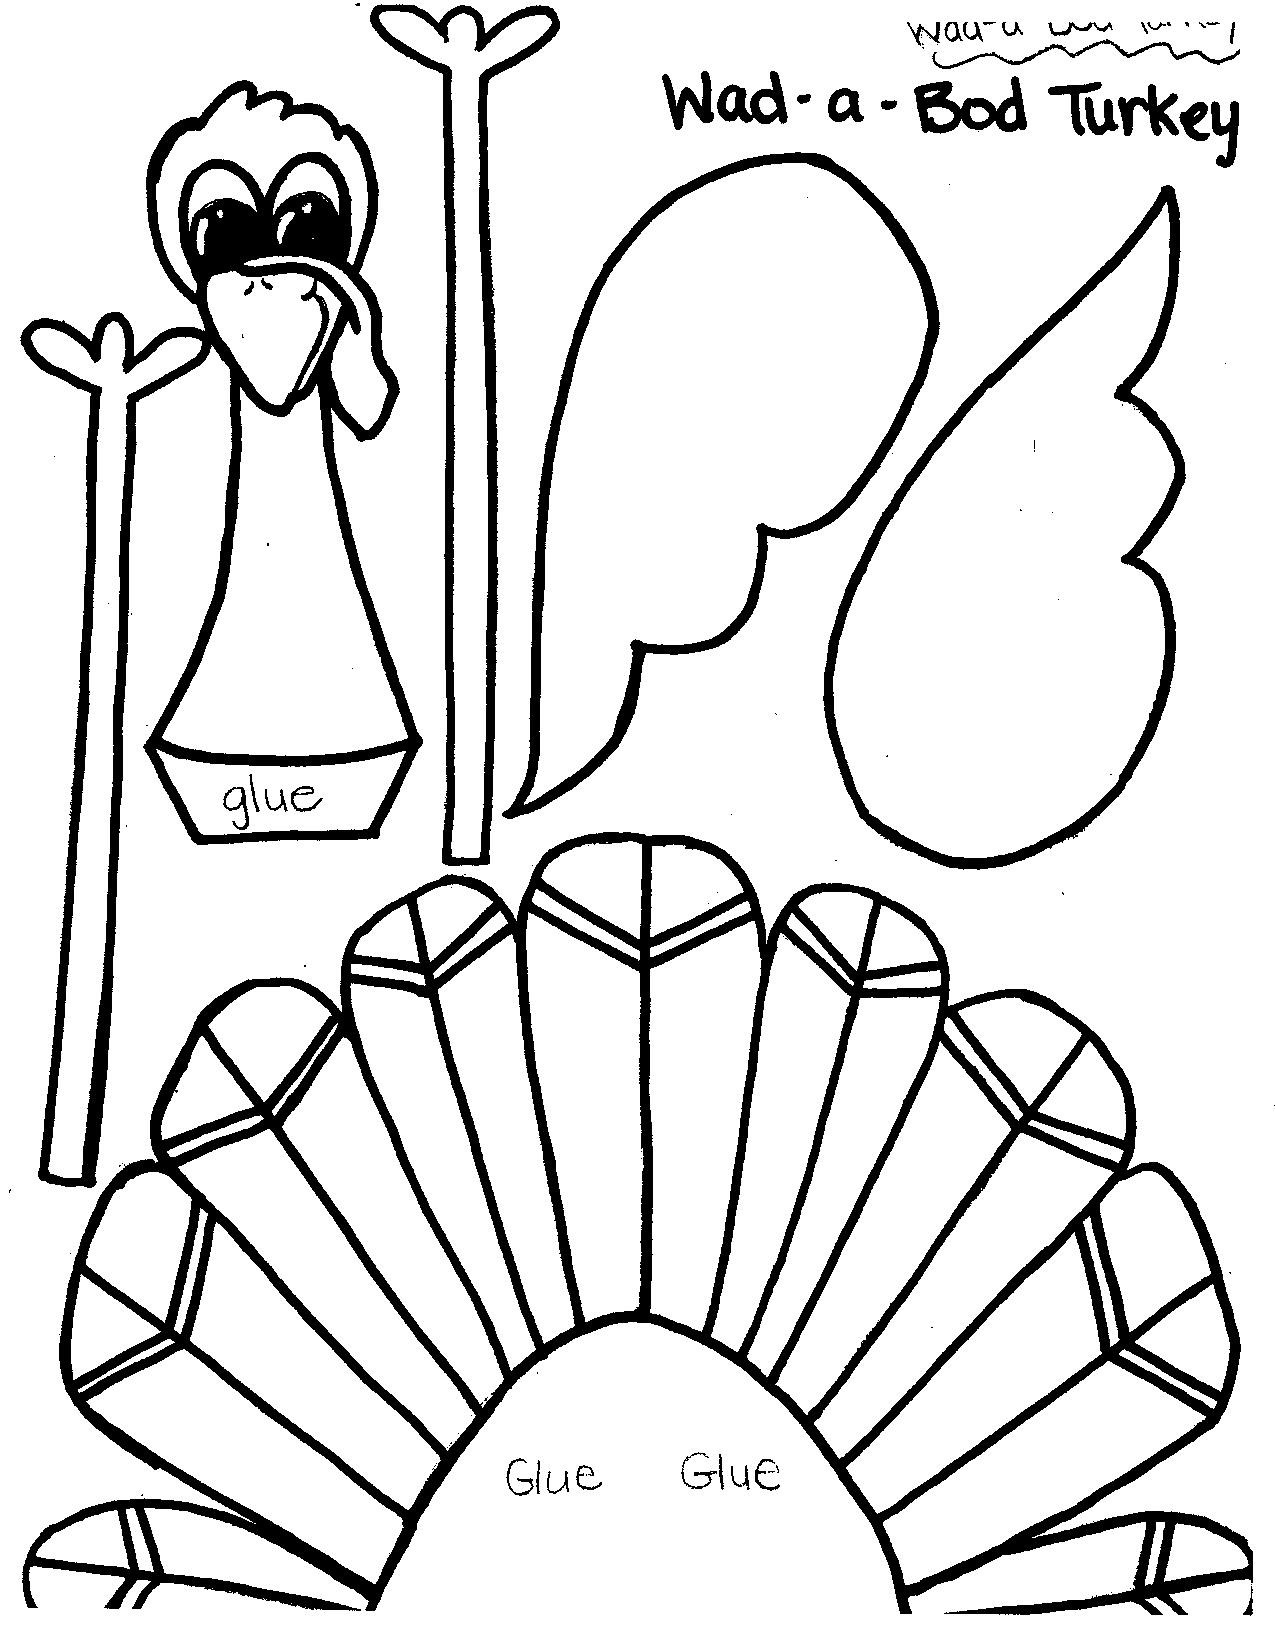 Thanksgiving Turkey Template  Printable Thanksgiving Crafts and Activities for Kids